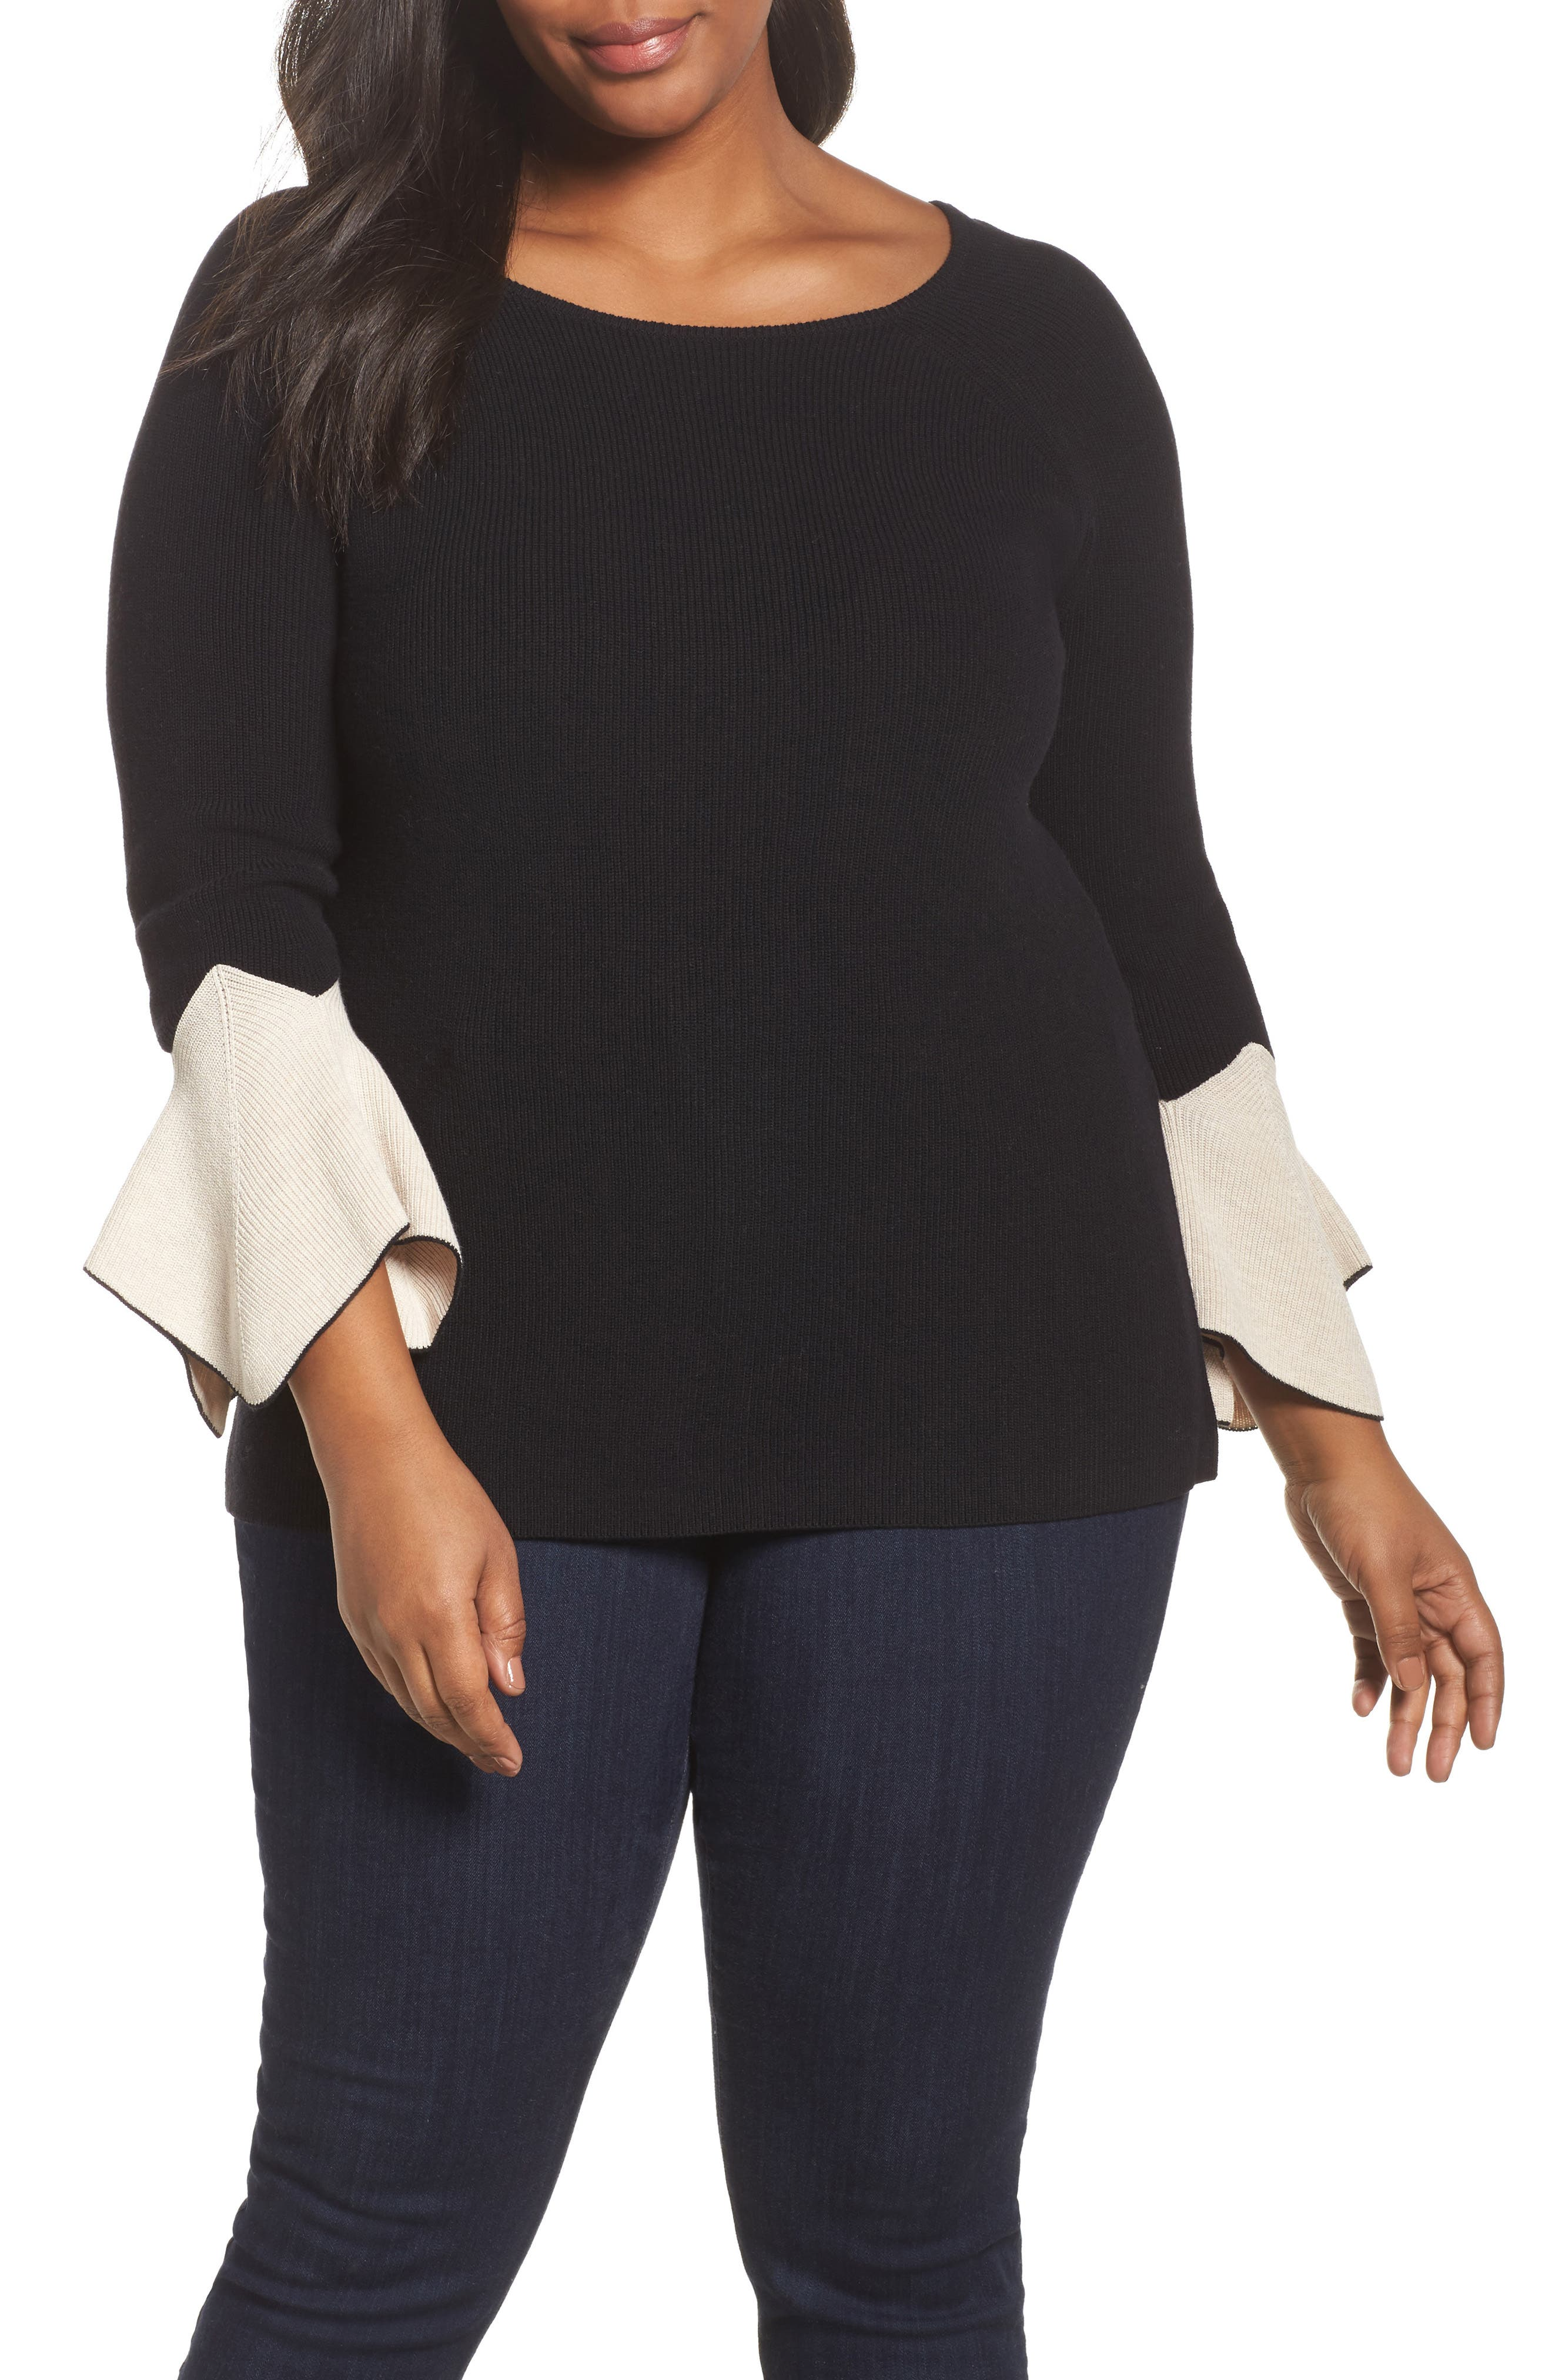 Main Image - NIC+ZOE Crystal Cuff Top (Plus Size)